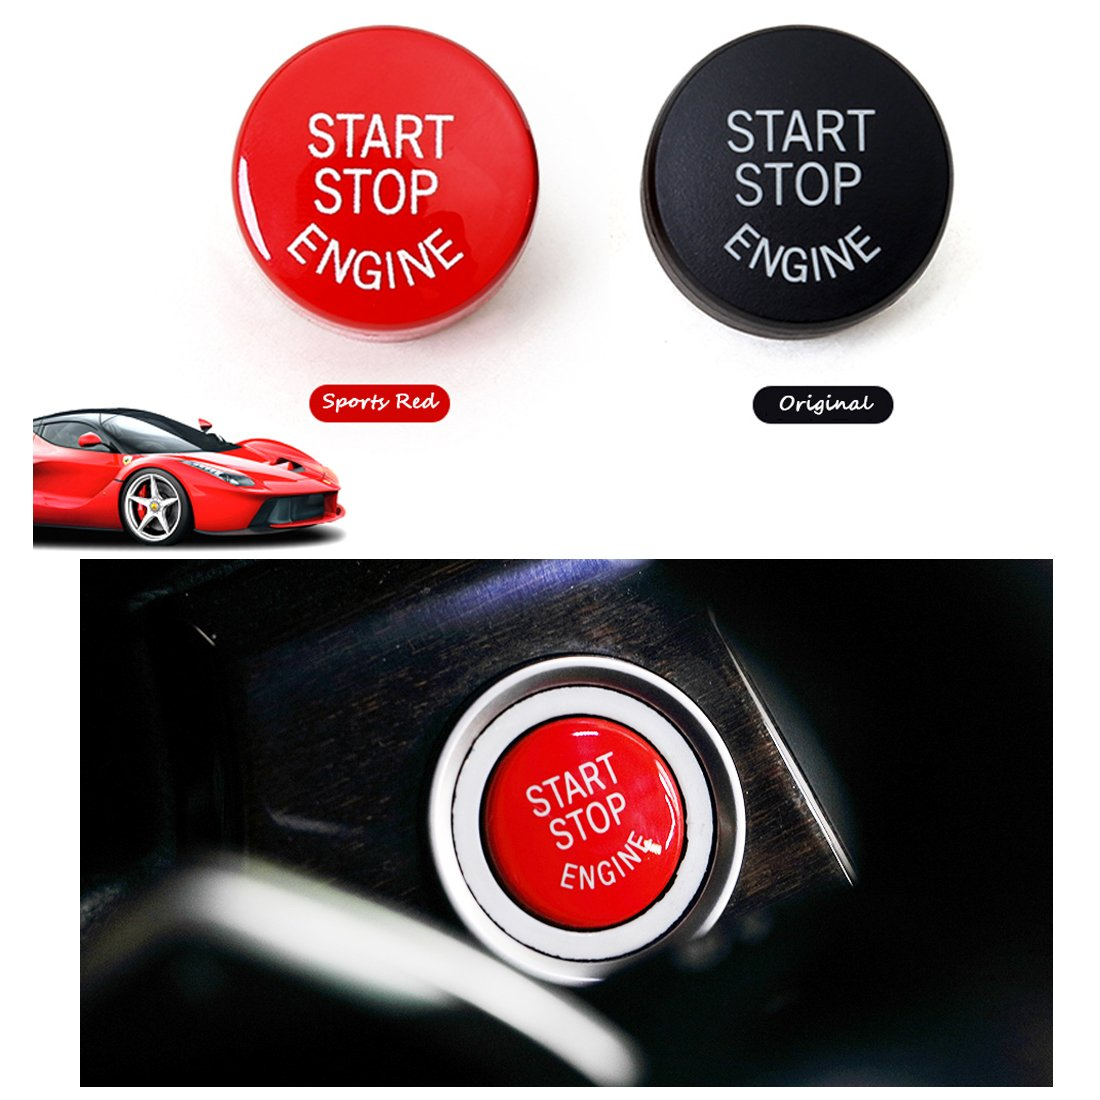 Fits: BMW 1 2 3 4 5 6 7 X1 X3 X4 X5 X6 Series 2010-2016 Sports Red Start Stop Engine Switch Button For BMW,Jaronx Engine Power Ignition Start Stop Button Replacement